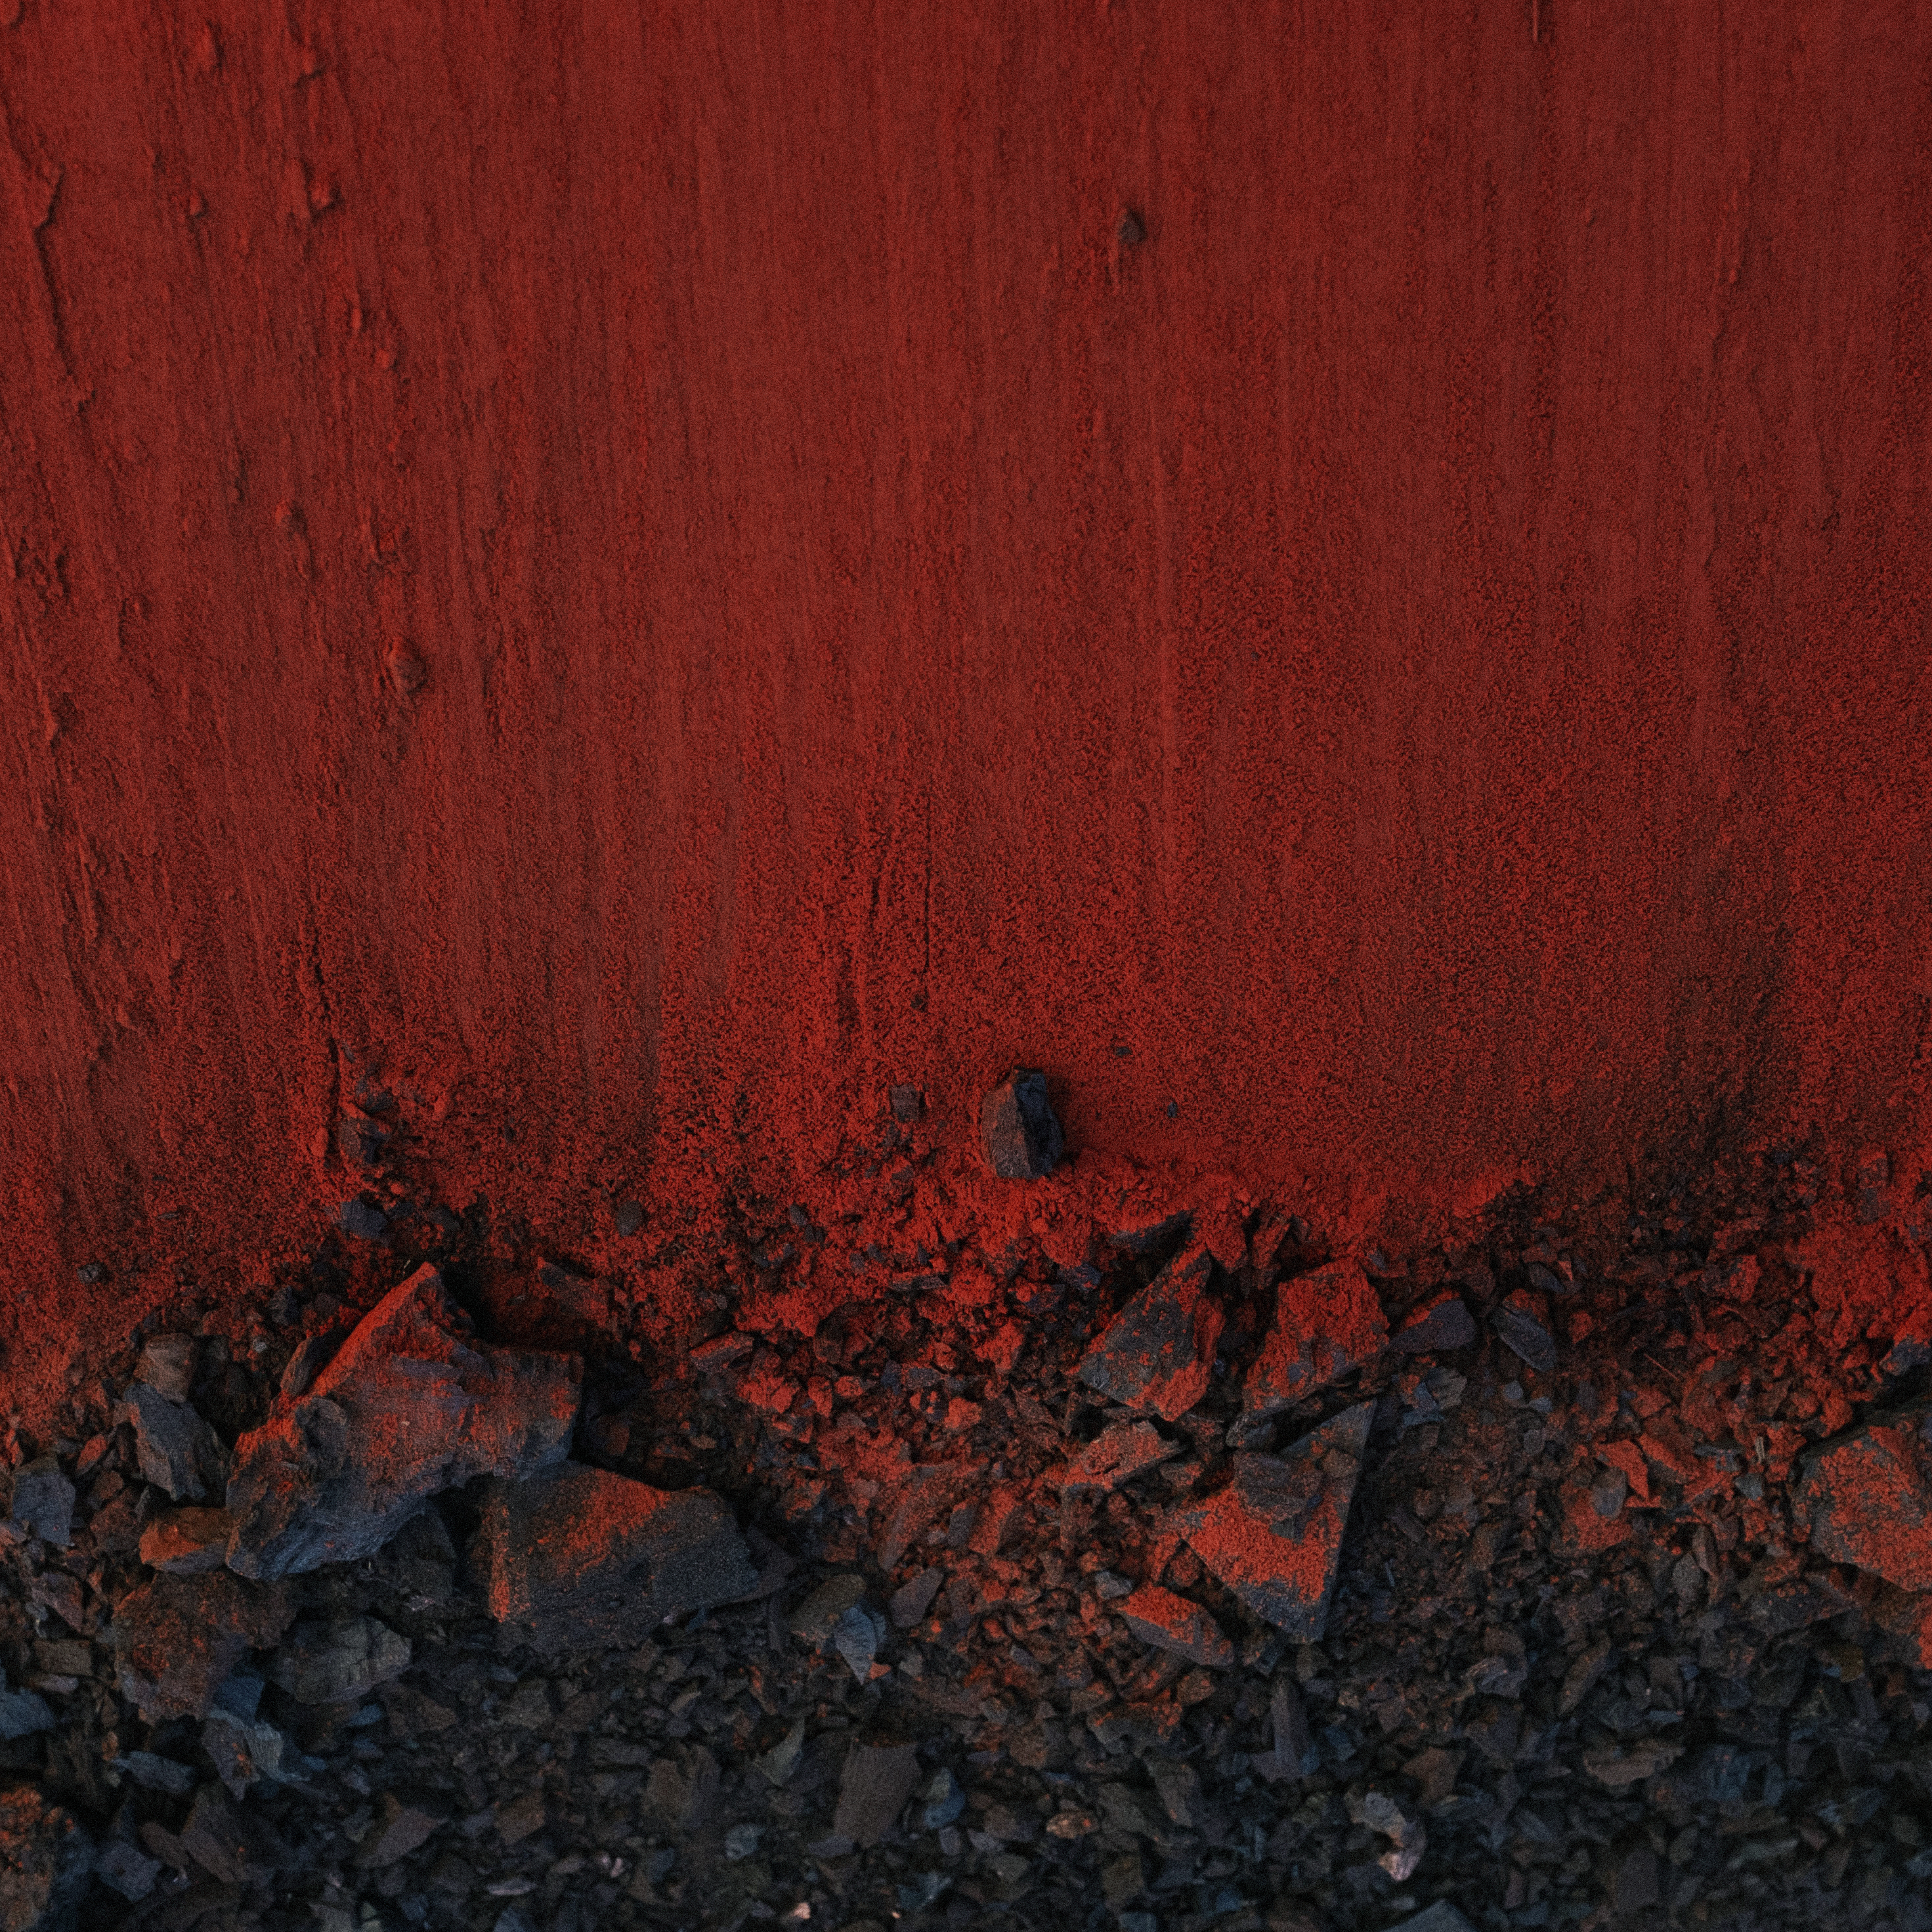 Moses Sumney - Black In Deep Red, 2014